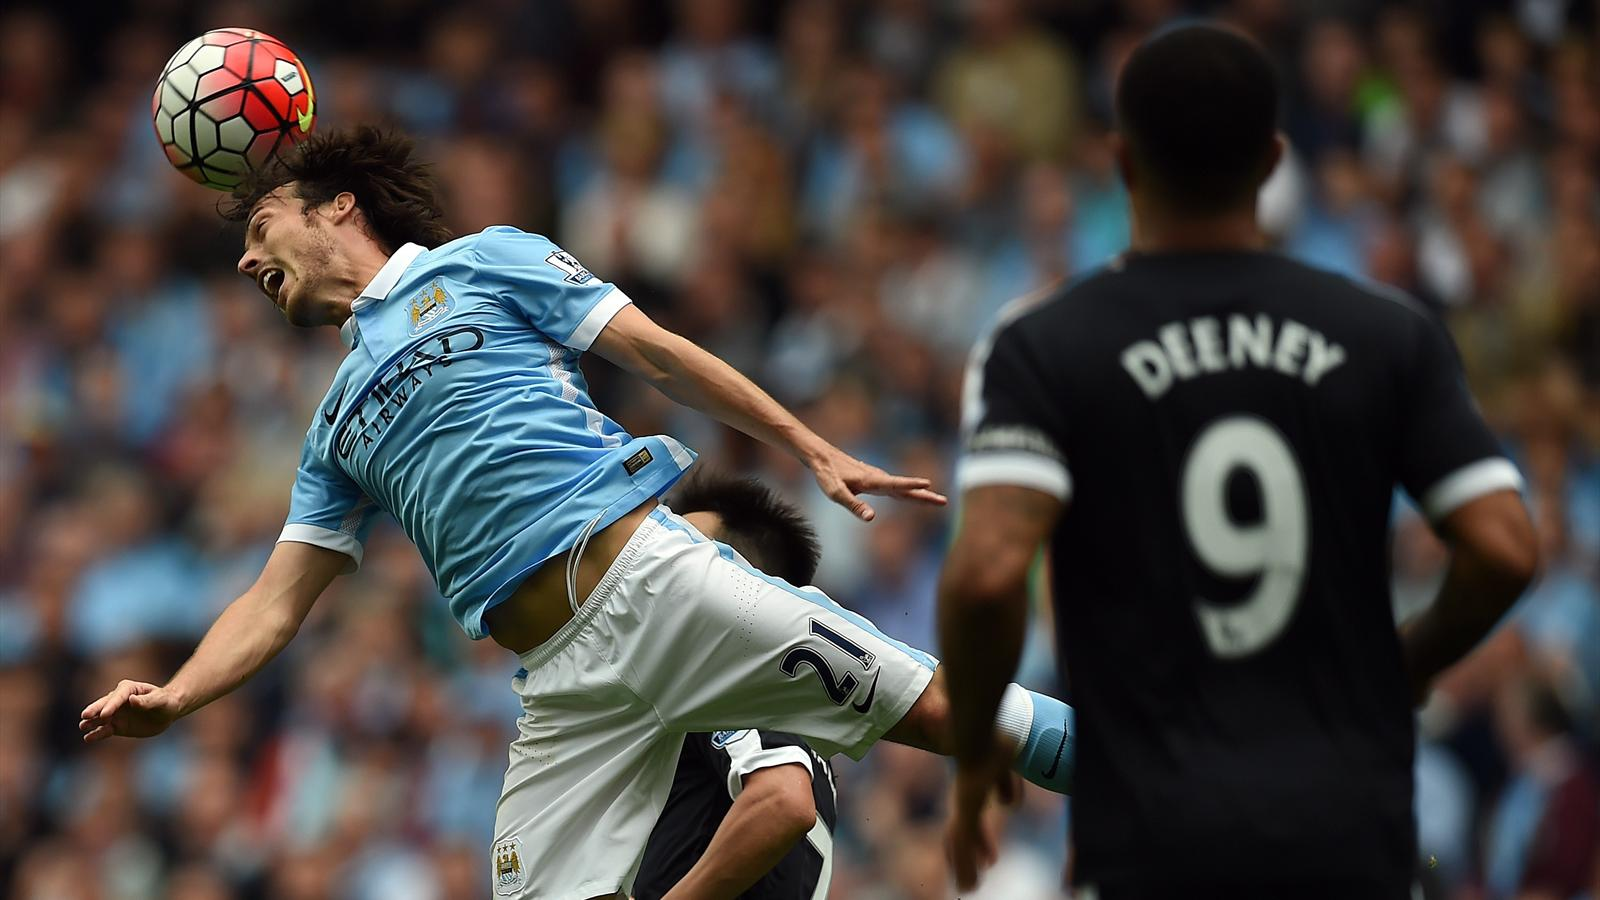 Manchester City's Spanish midfielder David Silva jumps for the ball